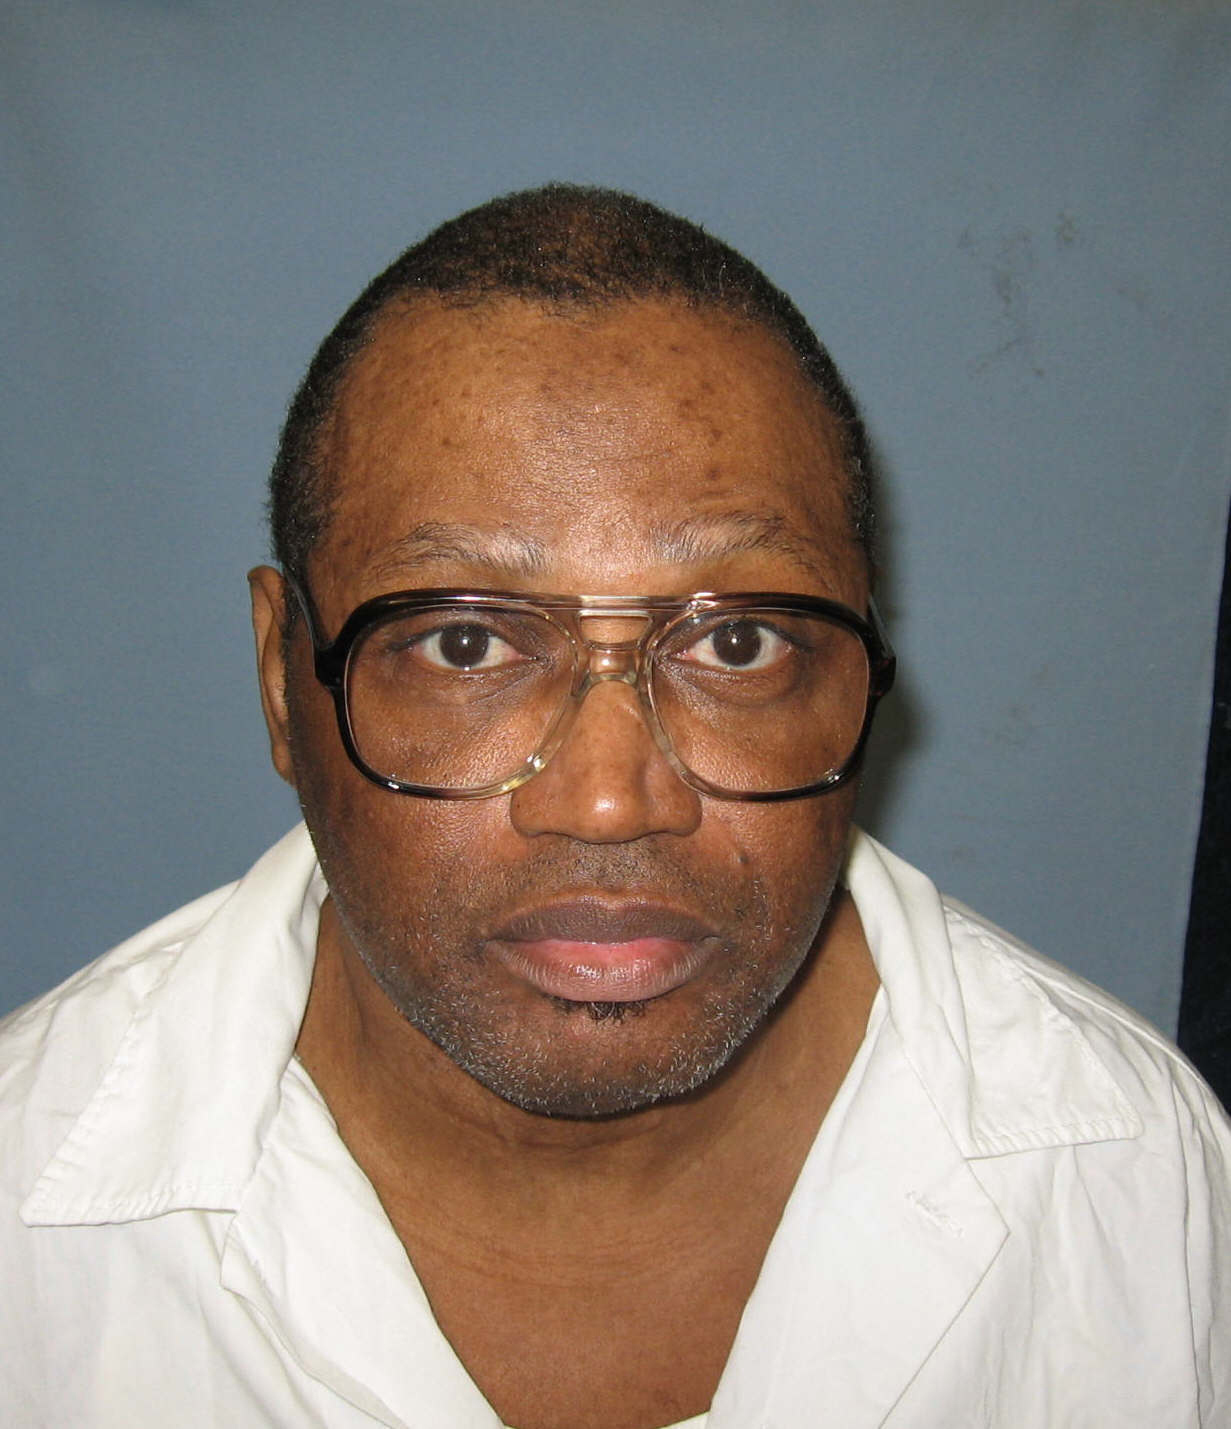 FILE - An undated photo provided by the Alabama Department of Corrections shows inmate Vernon Madison.